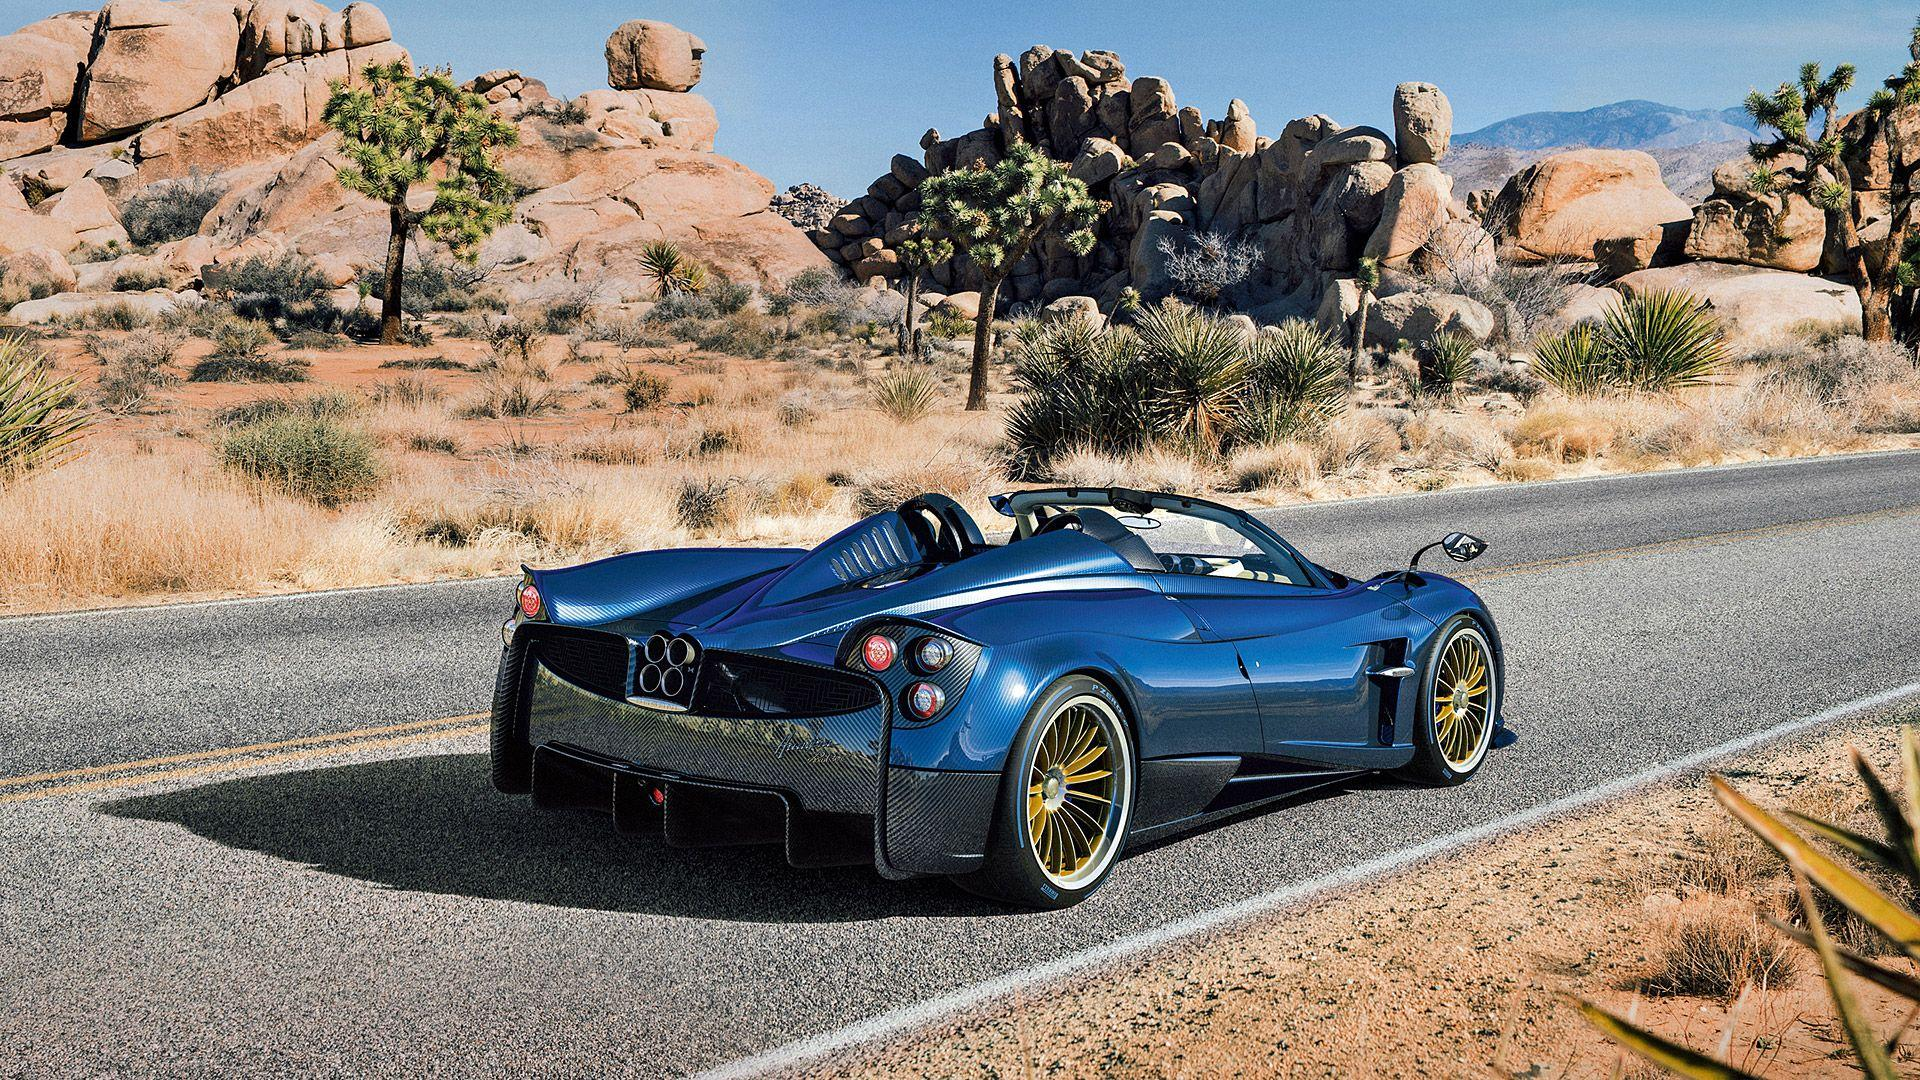 2017 Pagani Huayra Roadster Wallpapers & HD Image